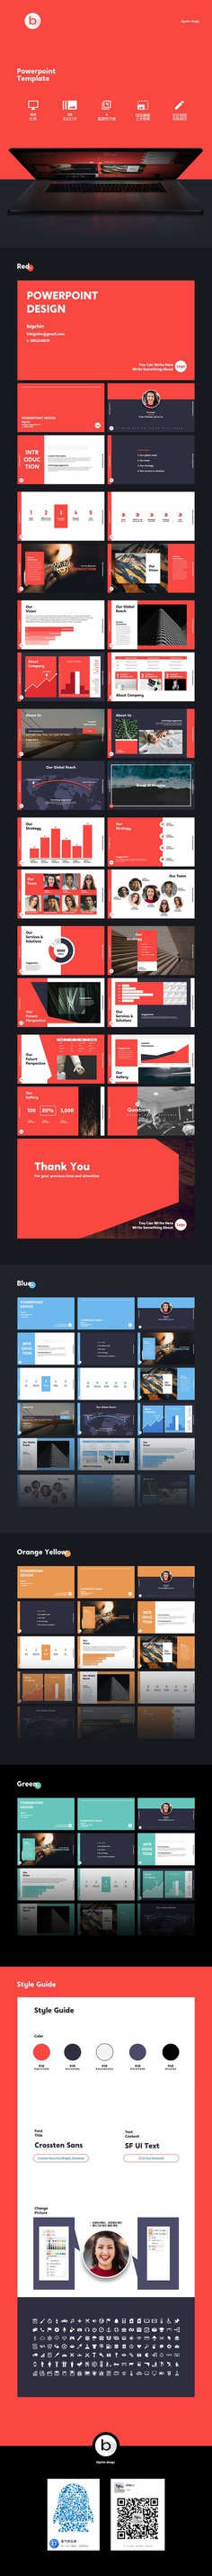 Powerpoint Template PPT Slide Business Plan on Behance